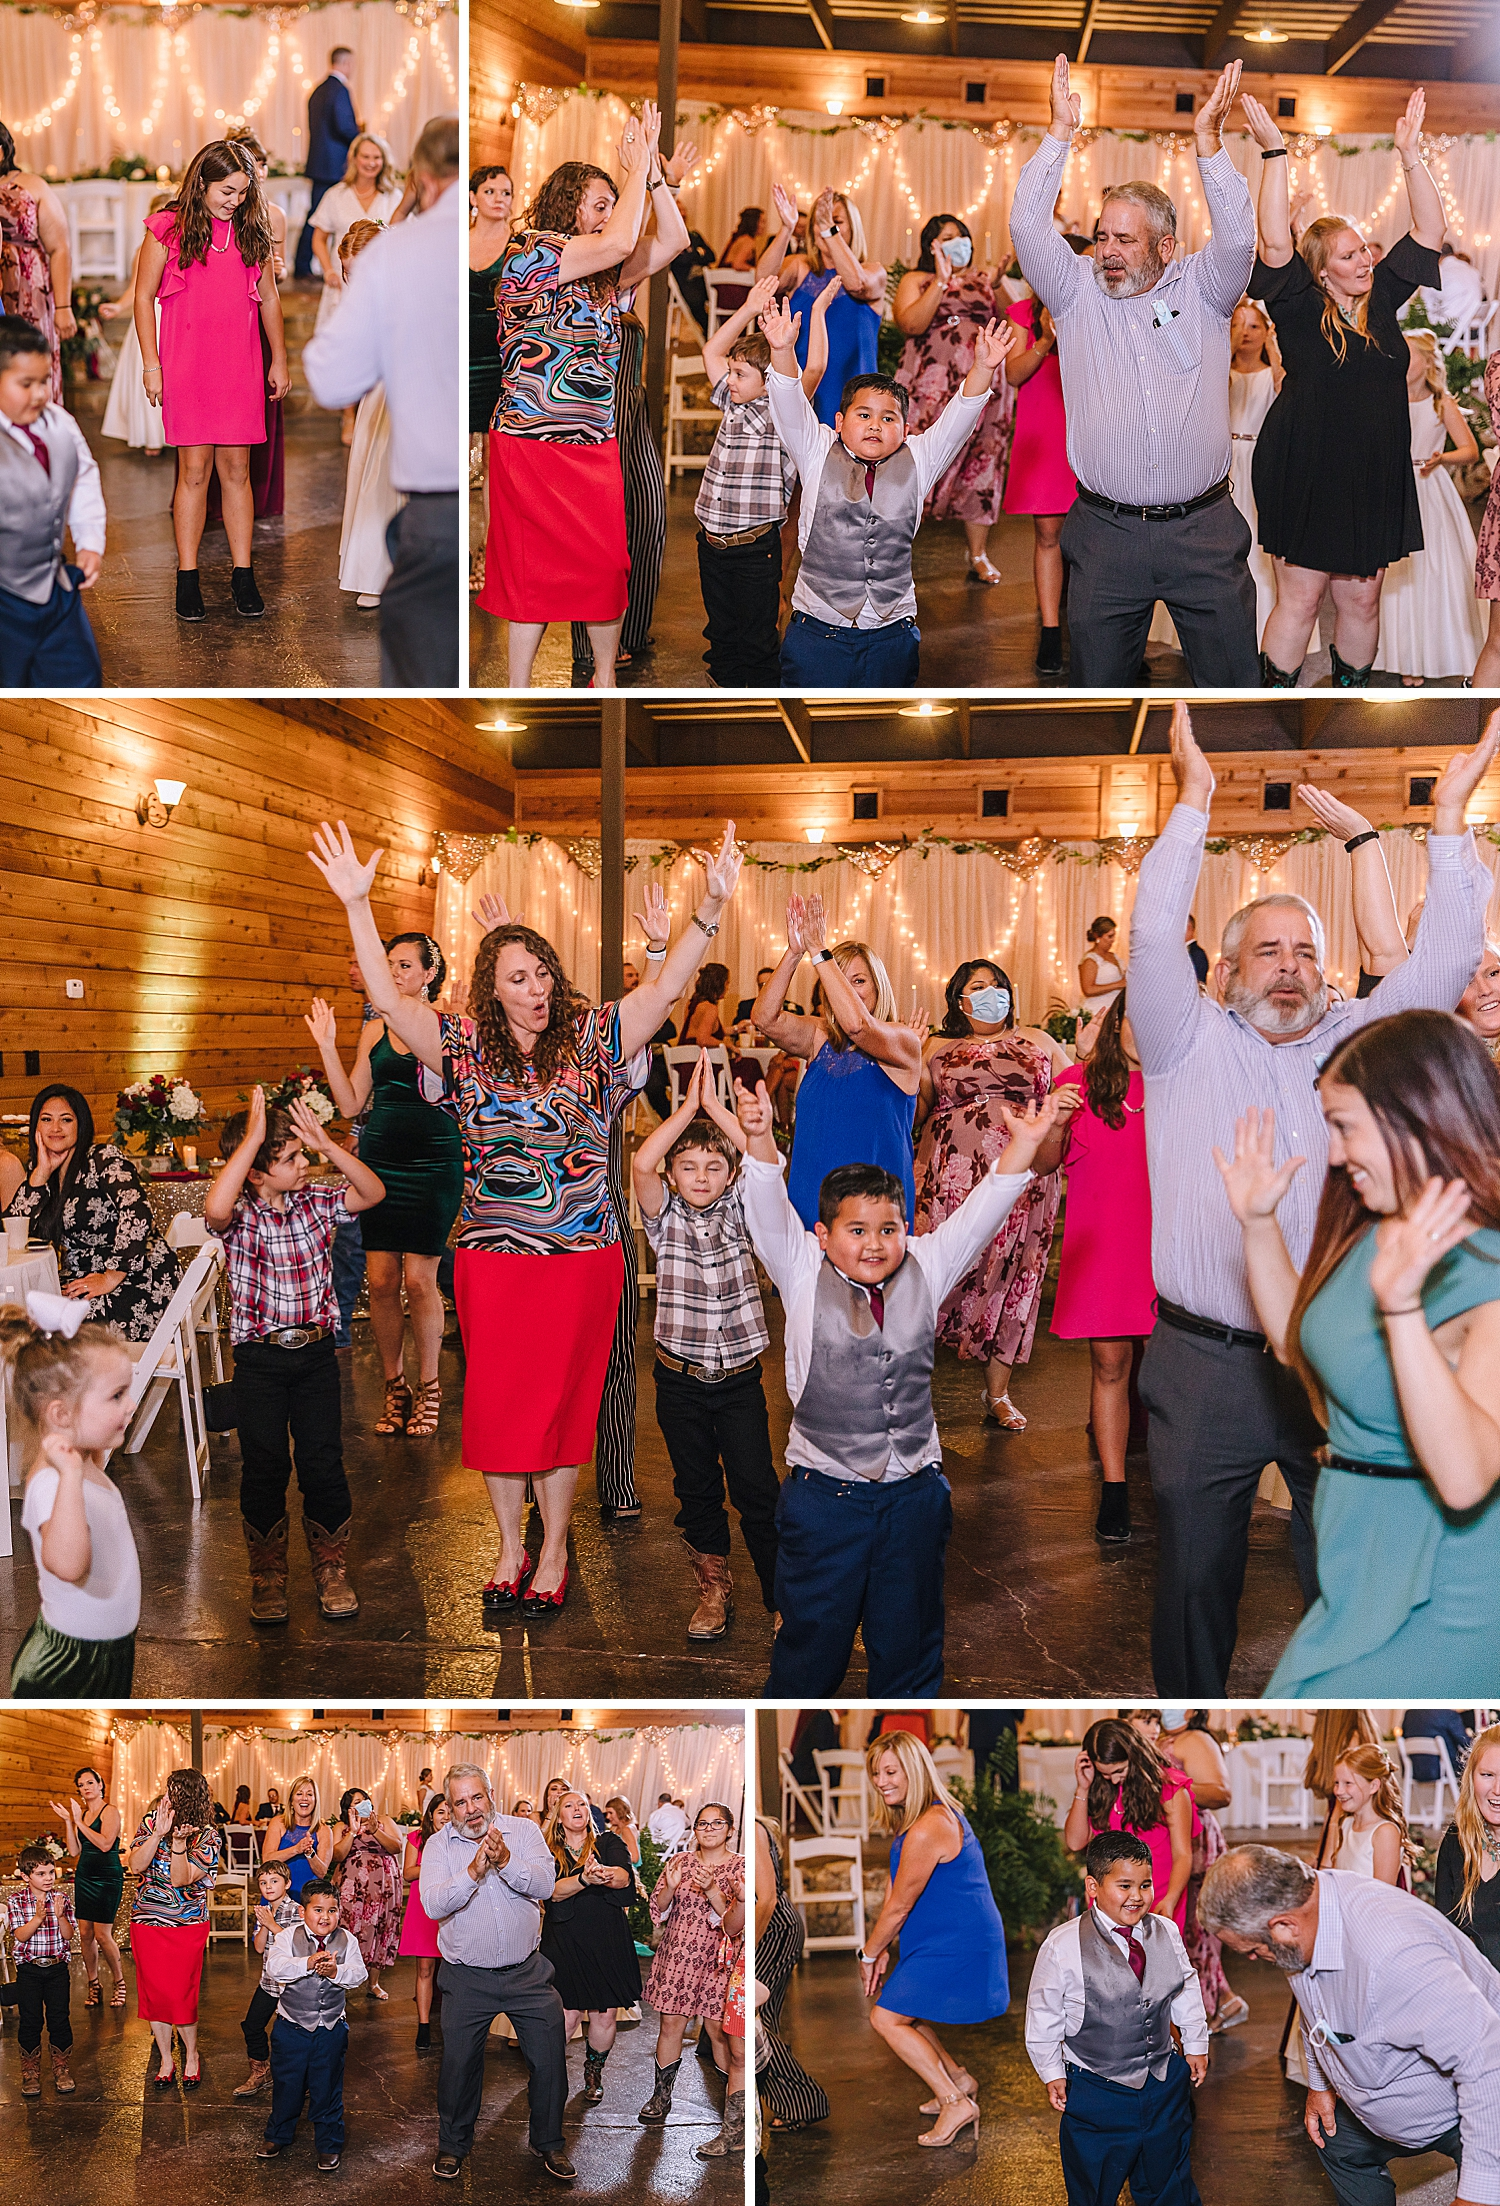 Geronimo-Oaks-Wedding-Venue-Seguin-Texas-Elegant-Navy-Burgundy-Wedding-Carly-Barton-Photography_0068.jpg